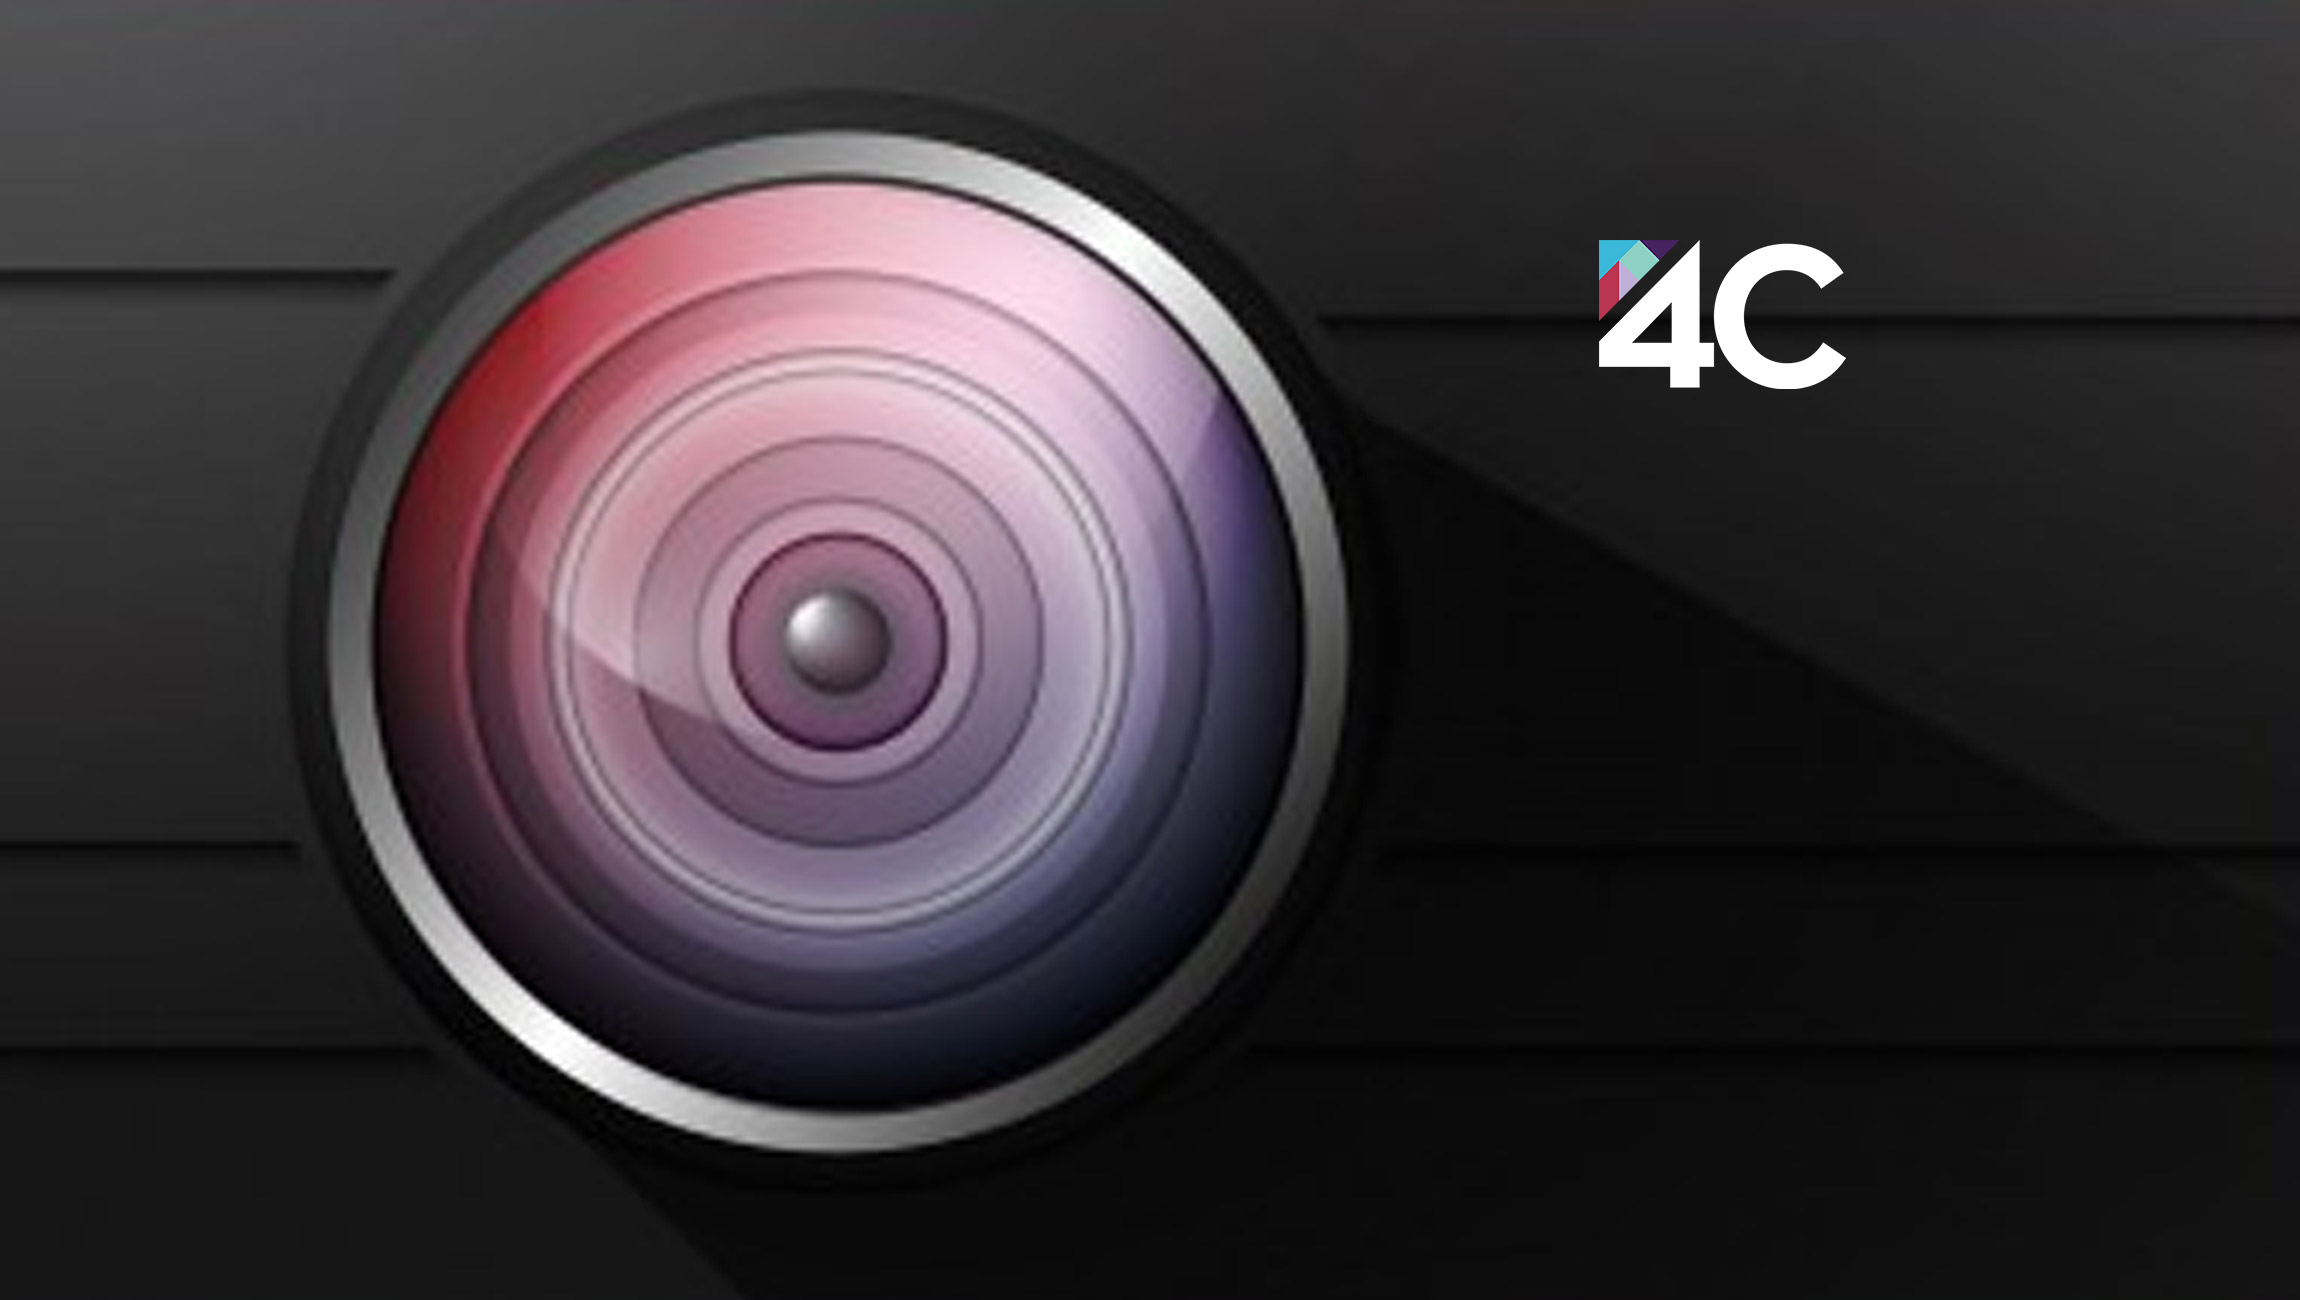 4C Expands Partnership with Placed for TV and OTT Audiences and Measurement